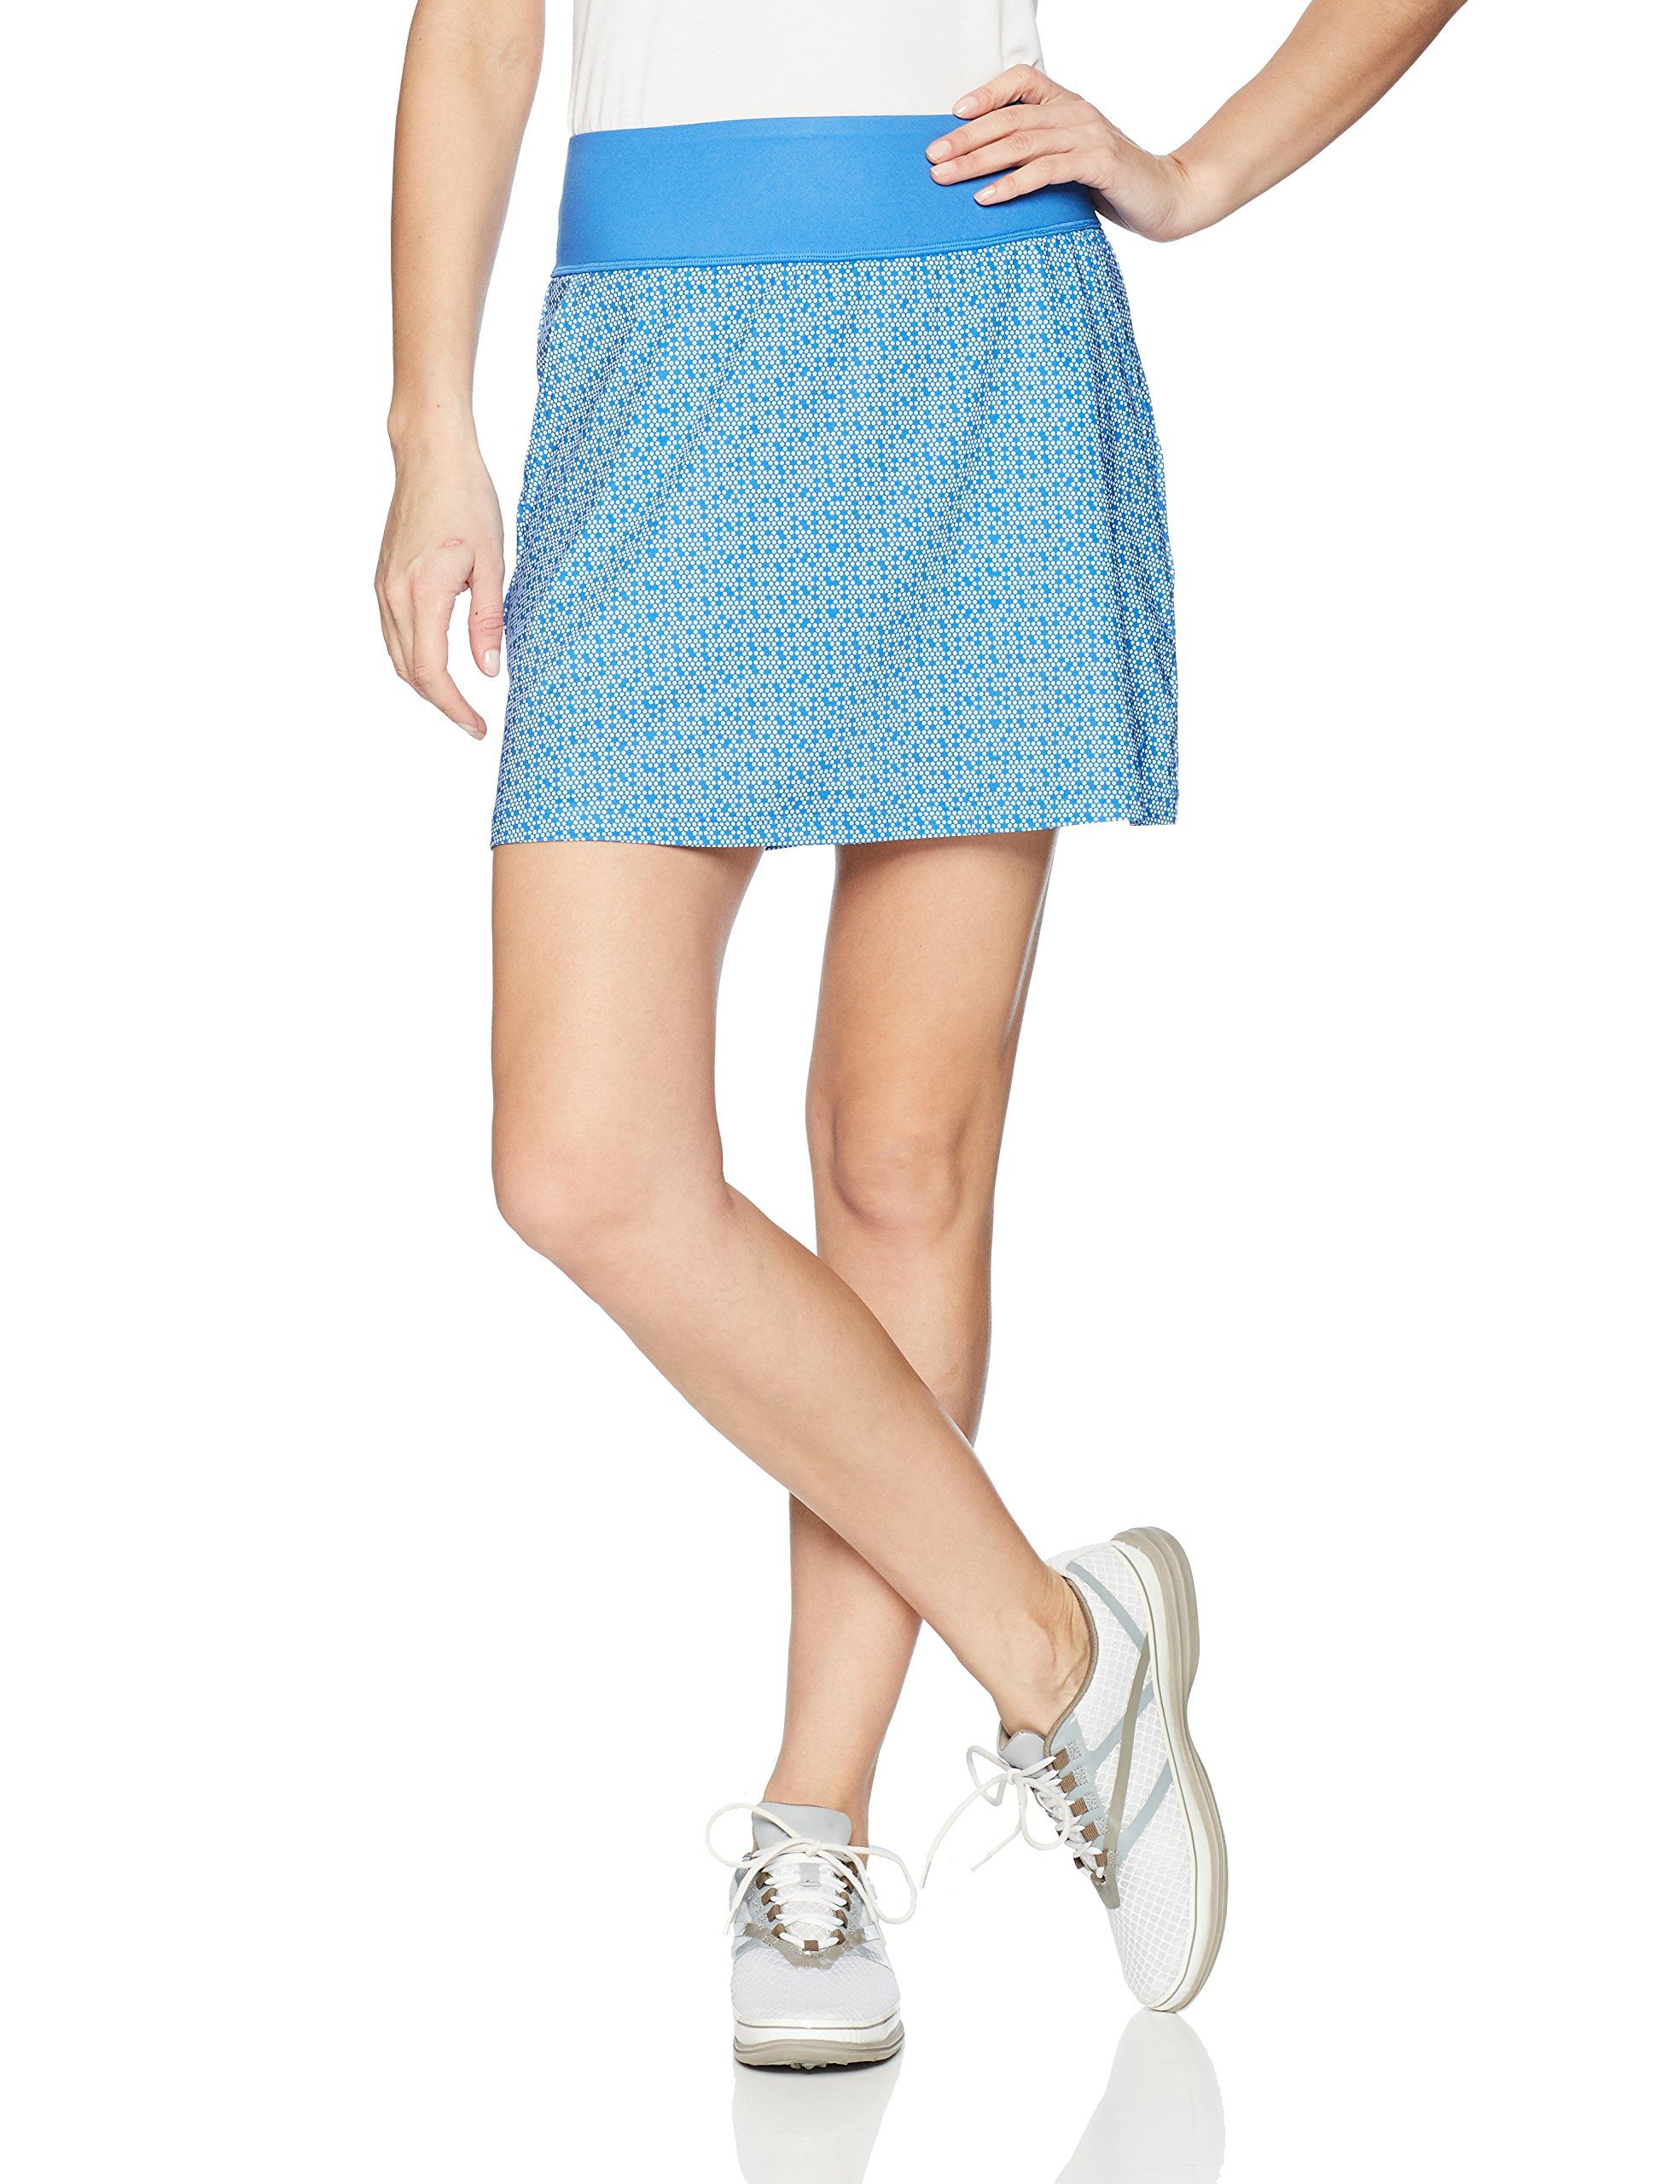 Golf Clothing     Puma Golf Womens 2018 Pwrshape Polka dot Knit Skirt  Nebula Blue Small   Read more at the photo link. (This is an affiliate  link). 05e6dc4fd8